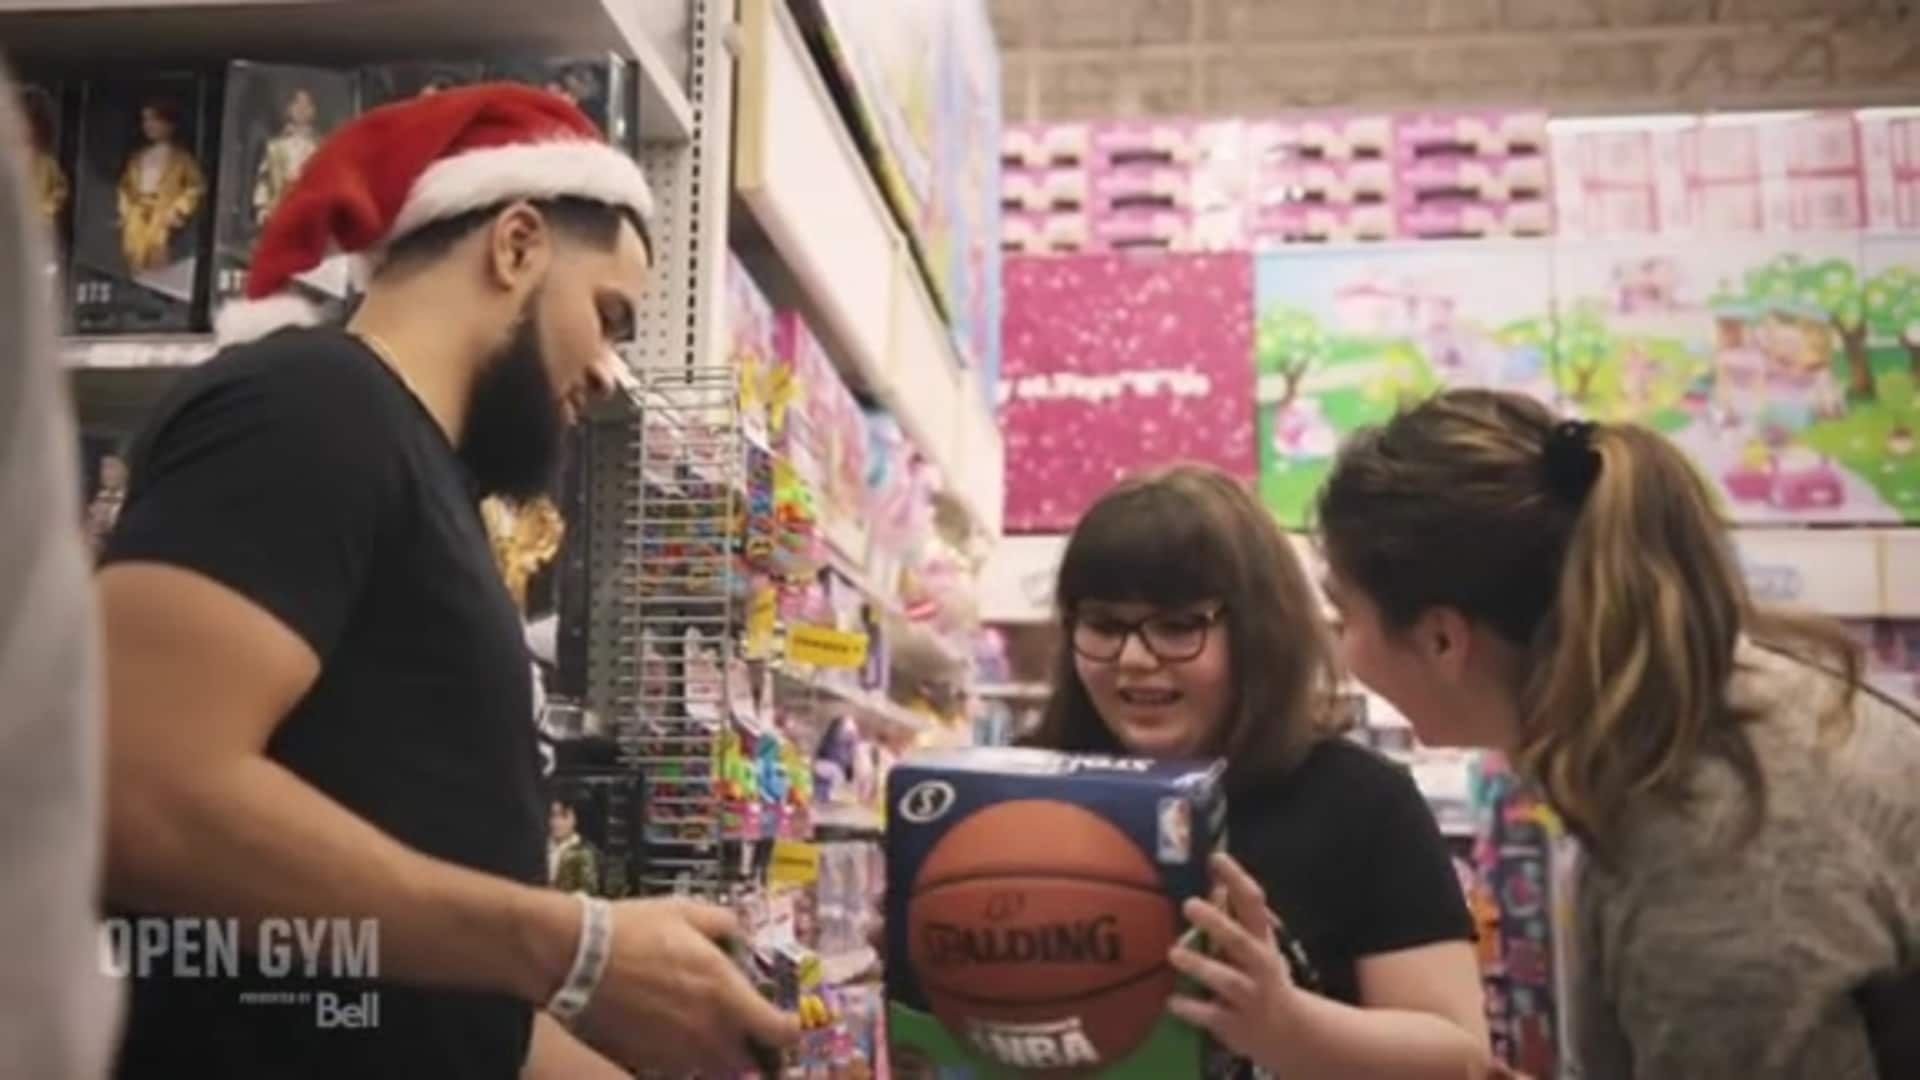 Fred VanVleet Spreads Holiday Cheer | Open Gym presented by Bell: OGS08E08